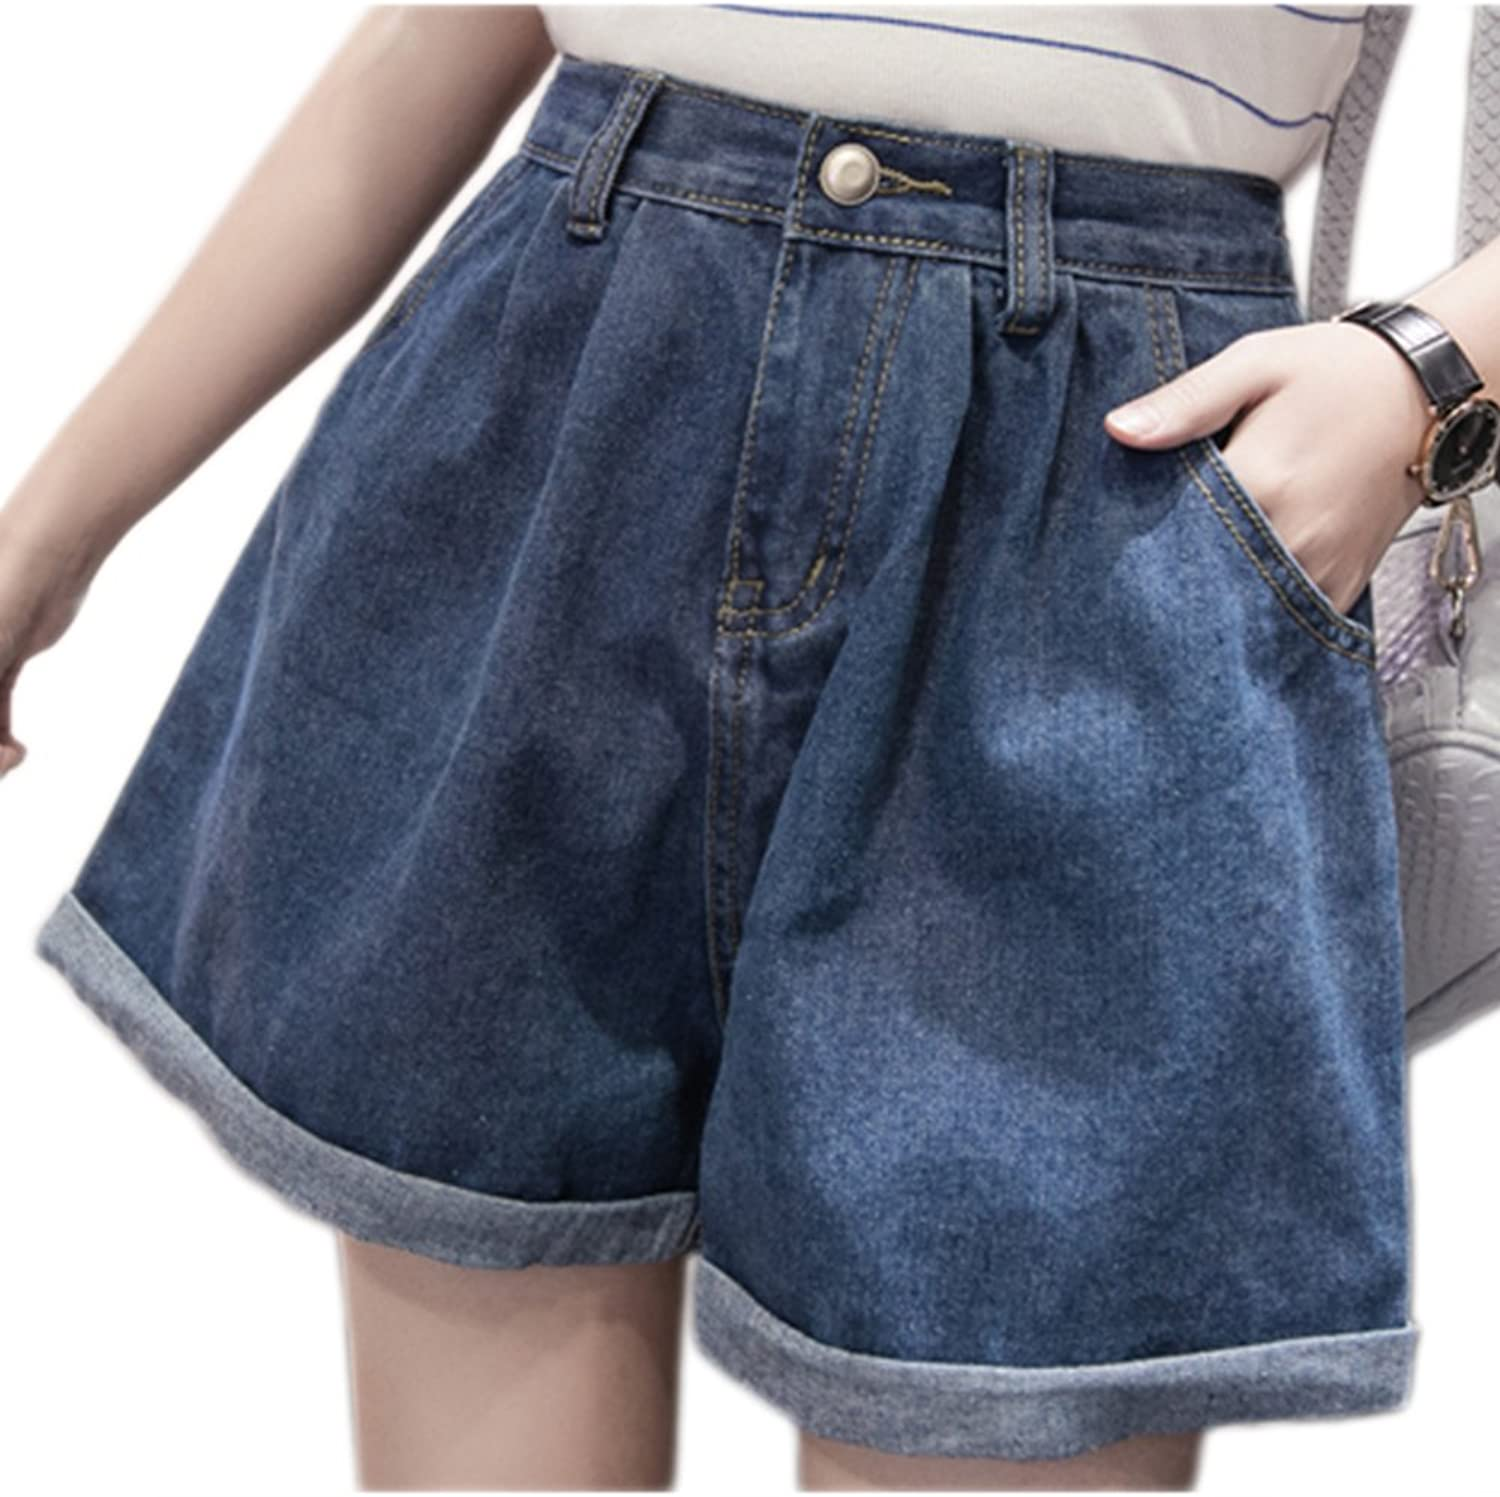 Zojuyozio Le Donne Estate Casual Alta Vita Ampia Gamba Denim Jeans Taglia Hot Shorts